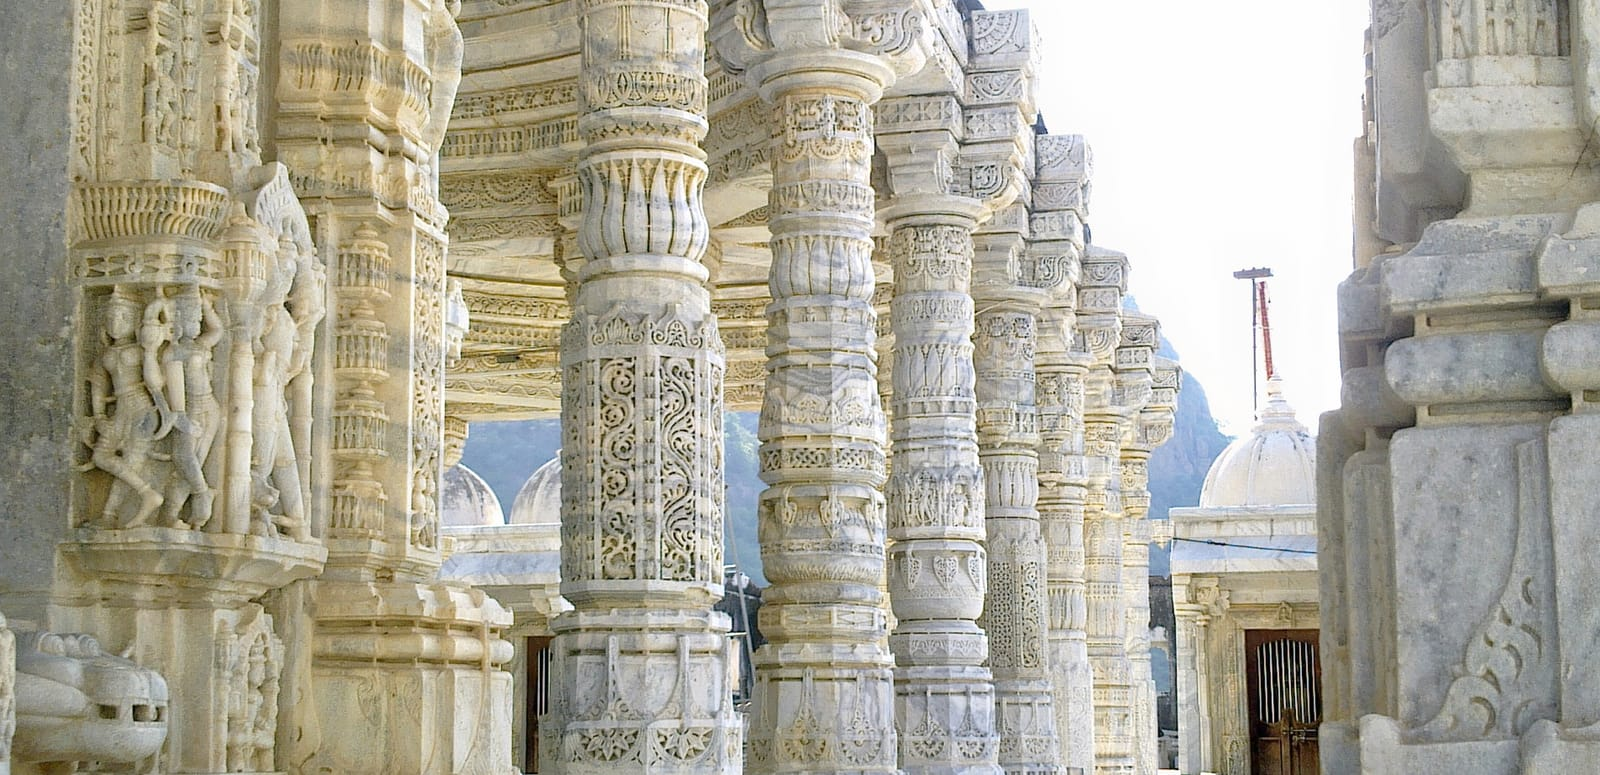 1492501545_pillars_at_the_mirpur_jain_temple.jpg